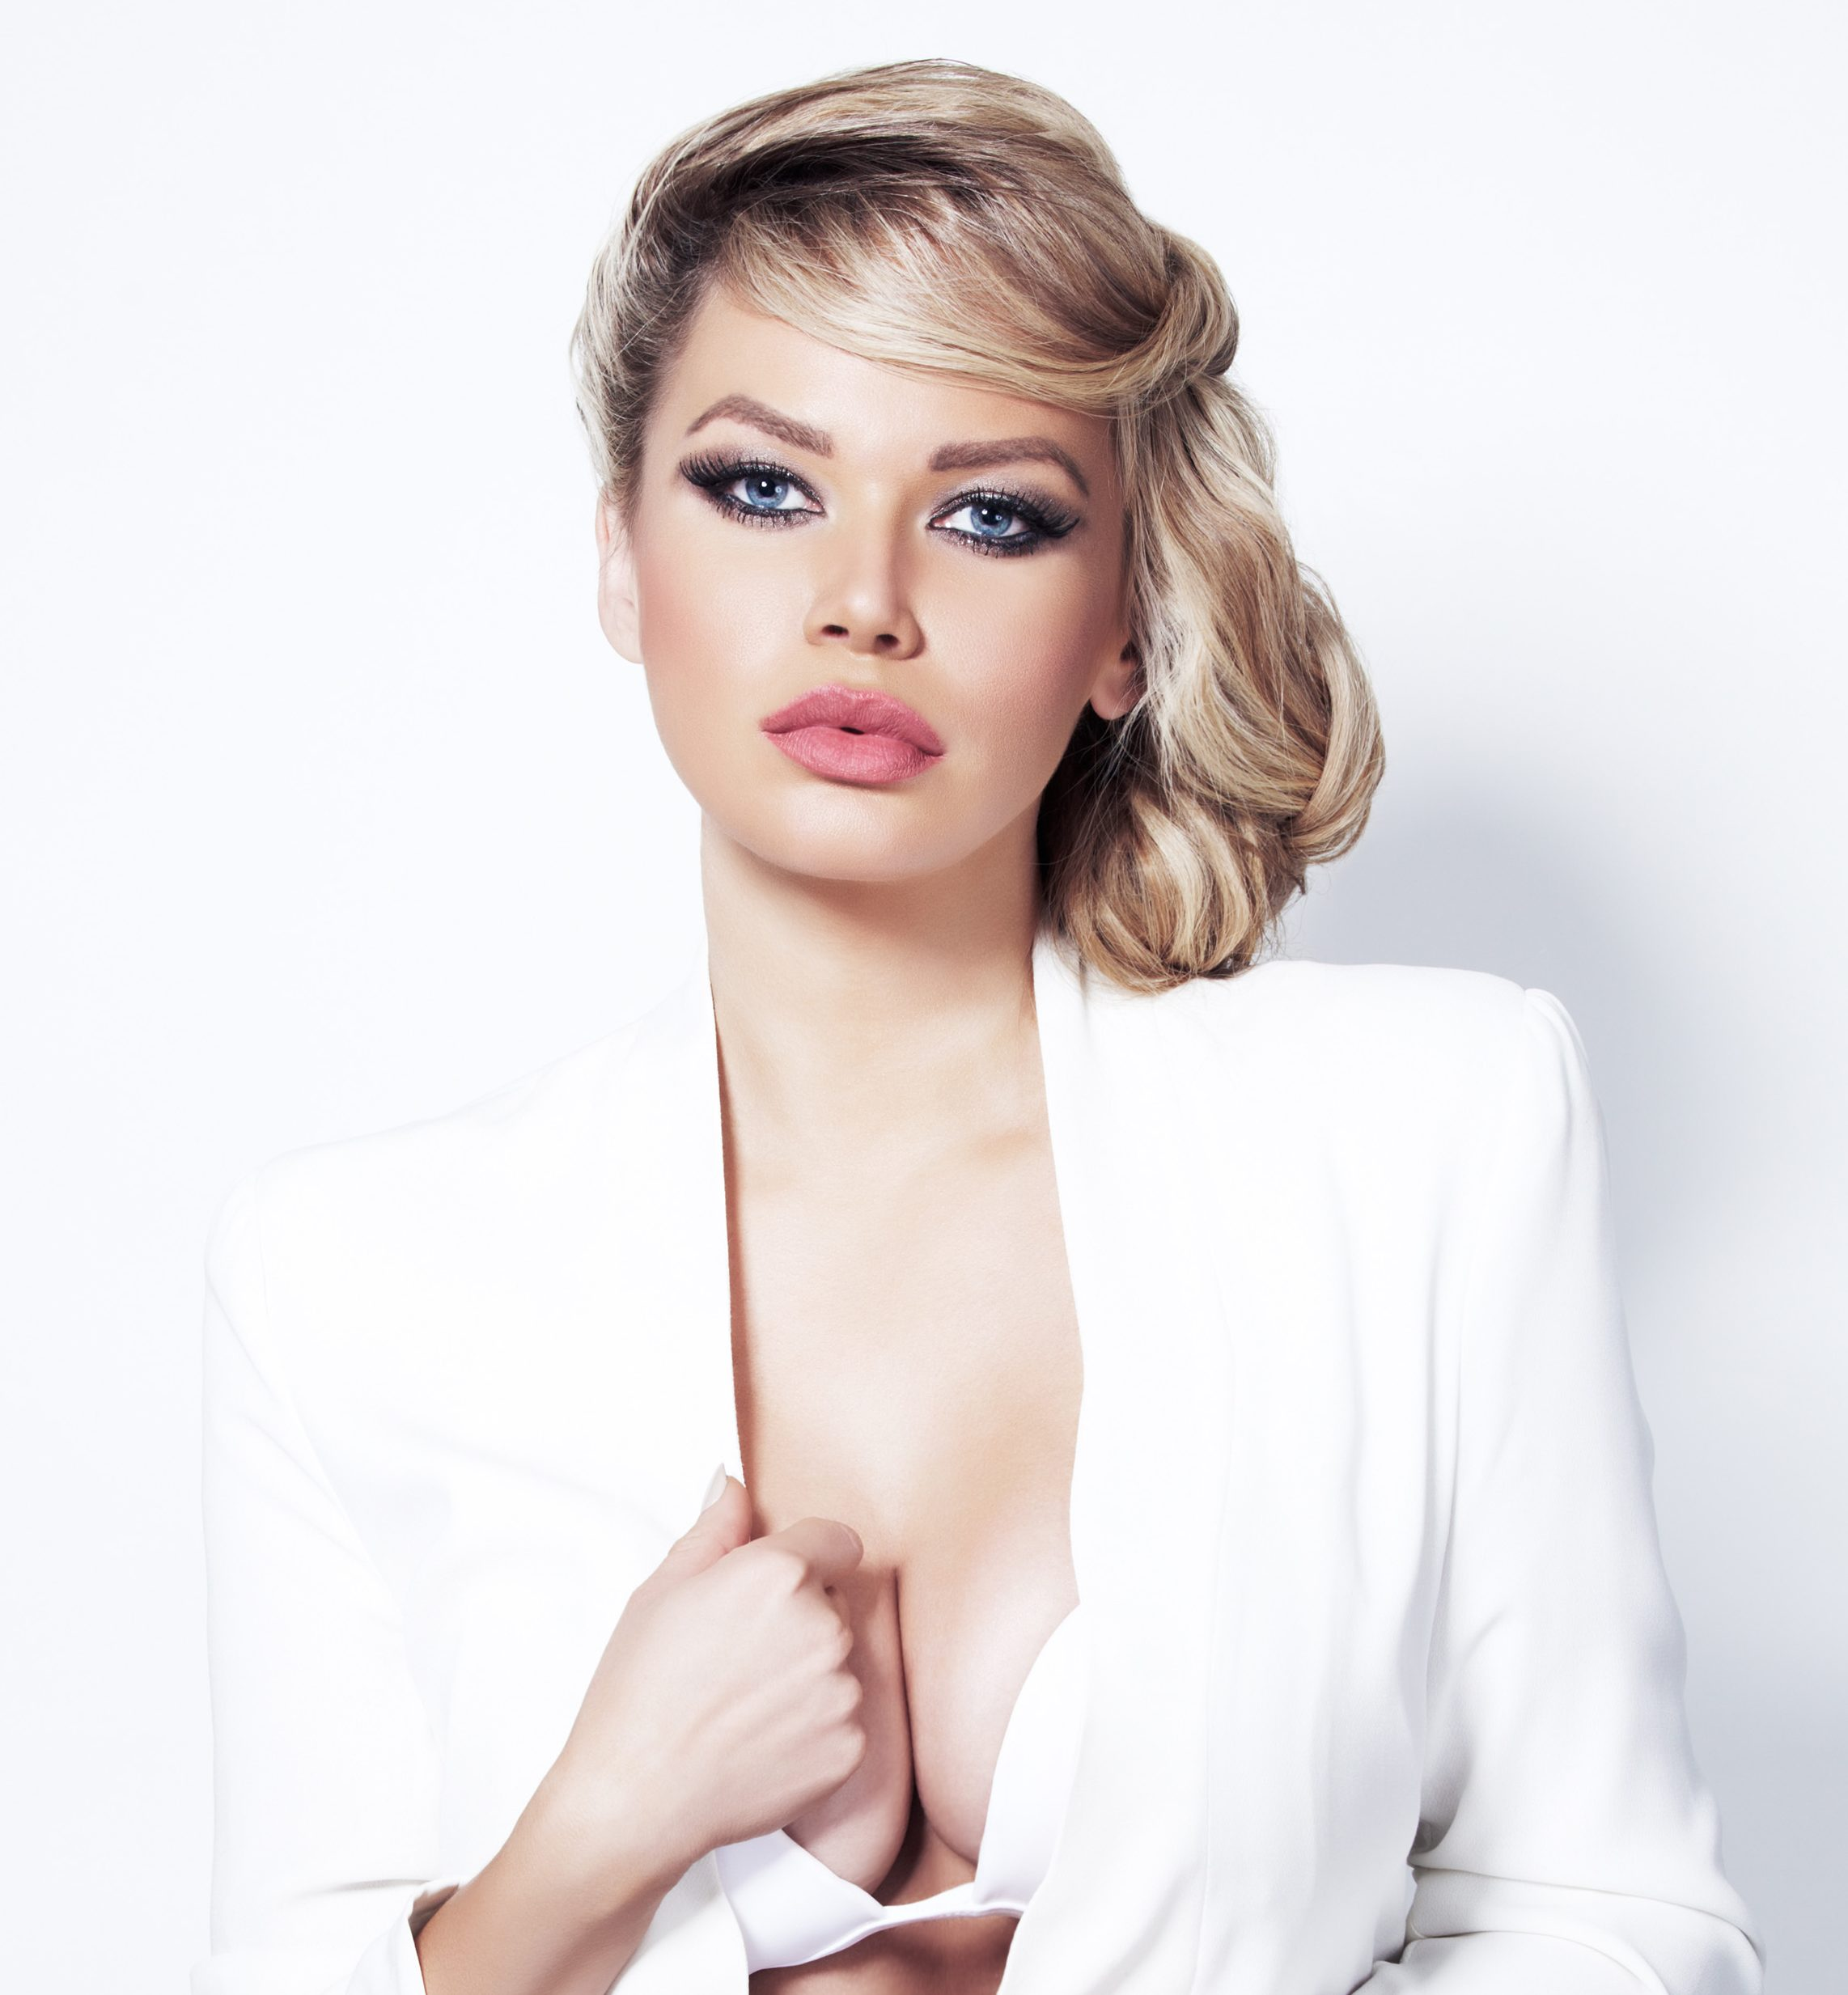 masha lund rated by fhm in 100 sexiest women in the